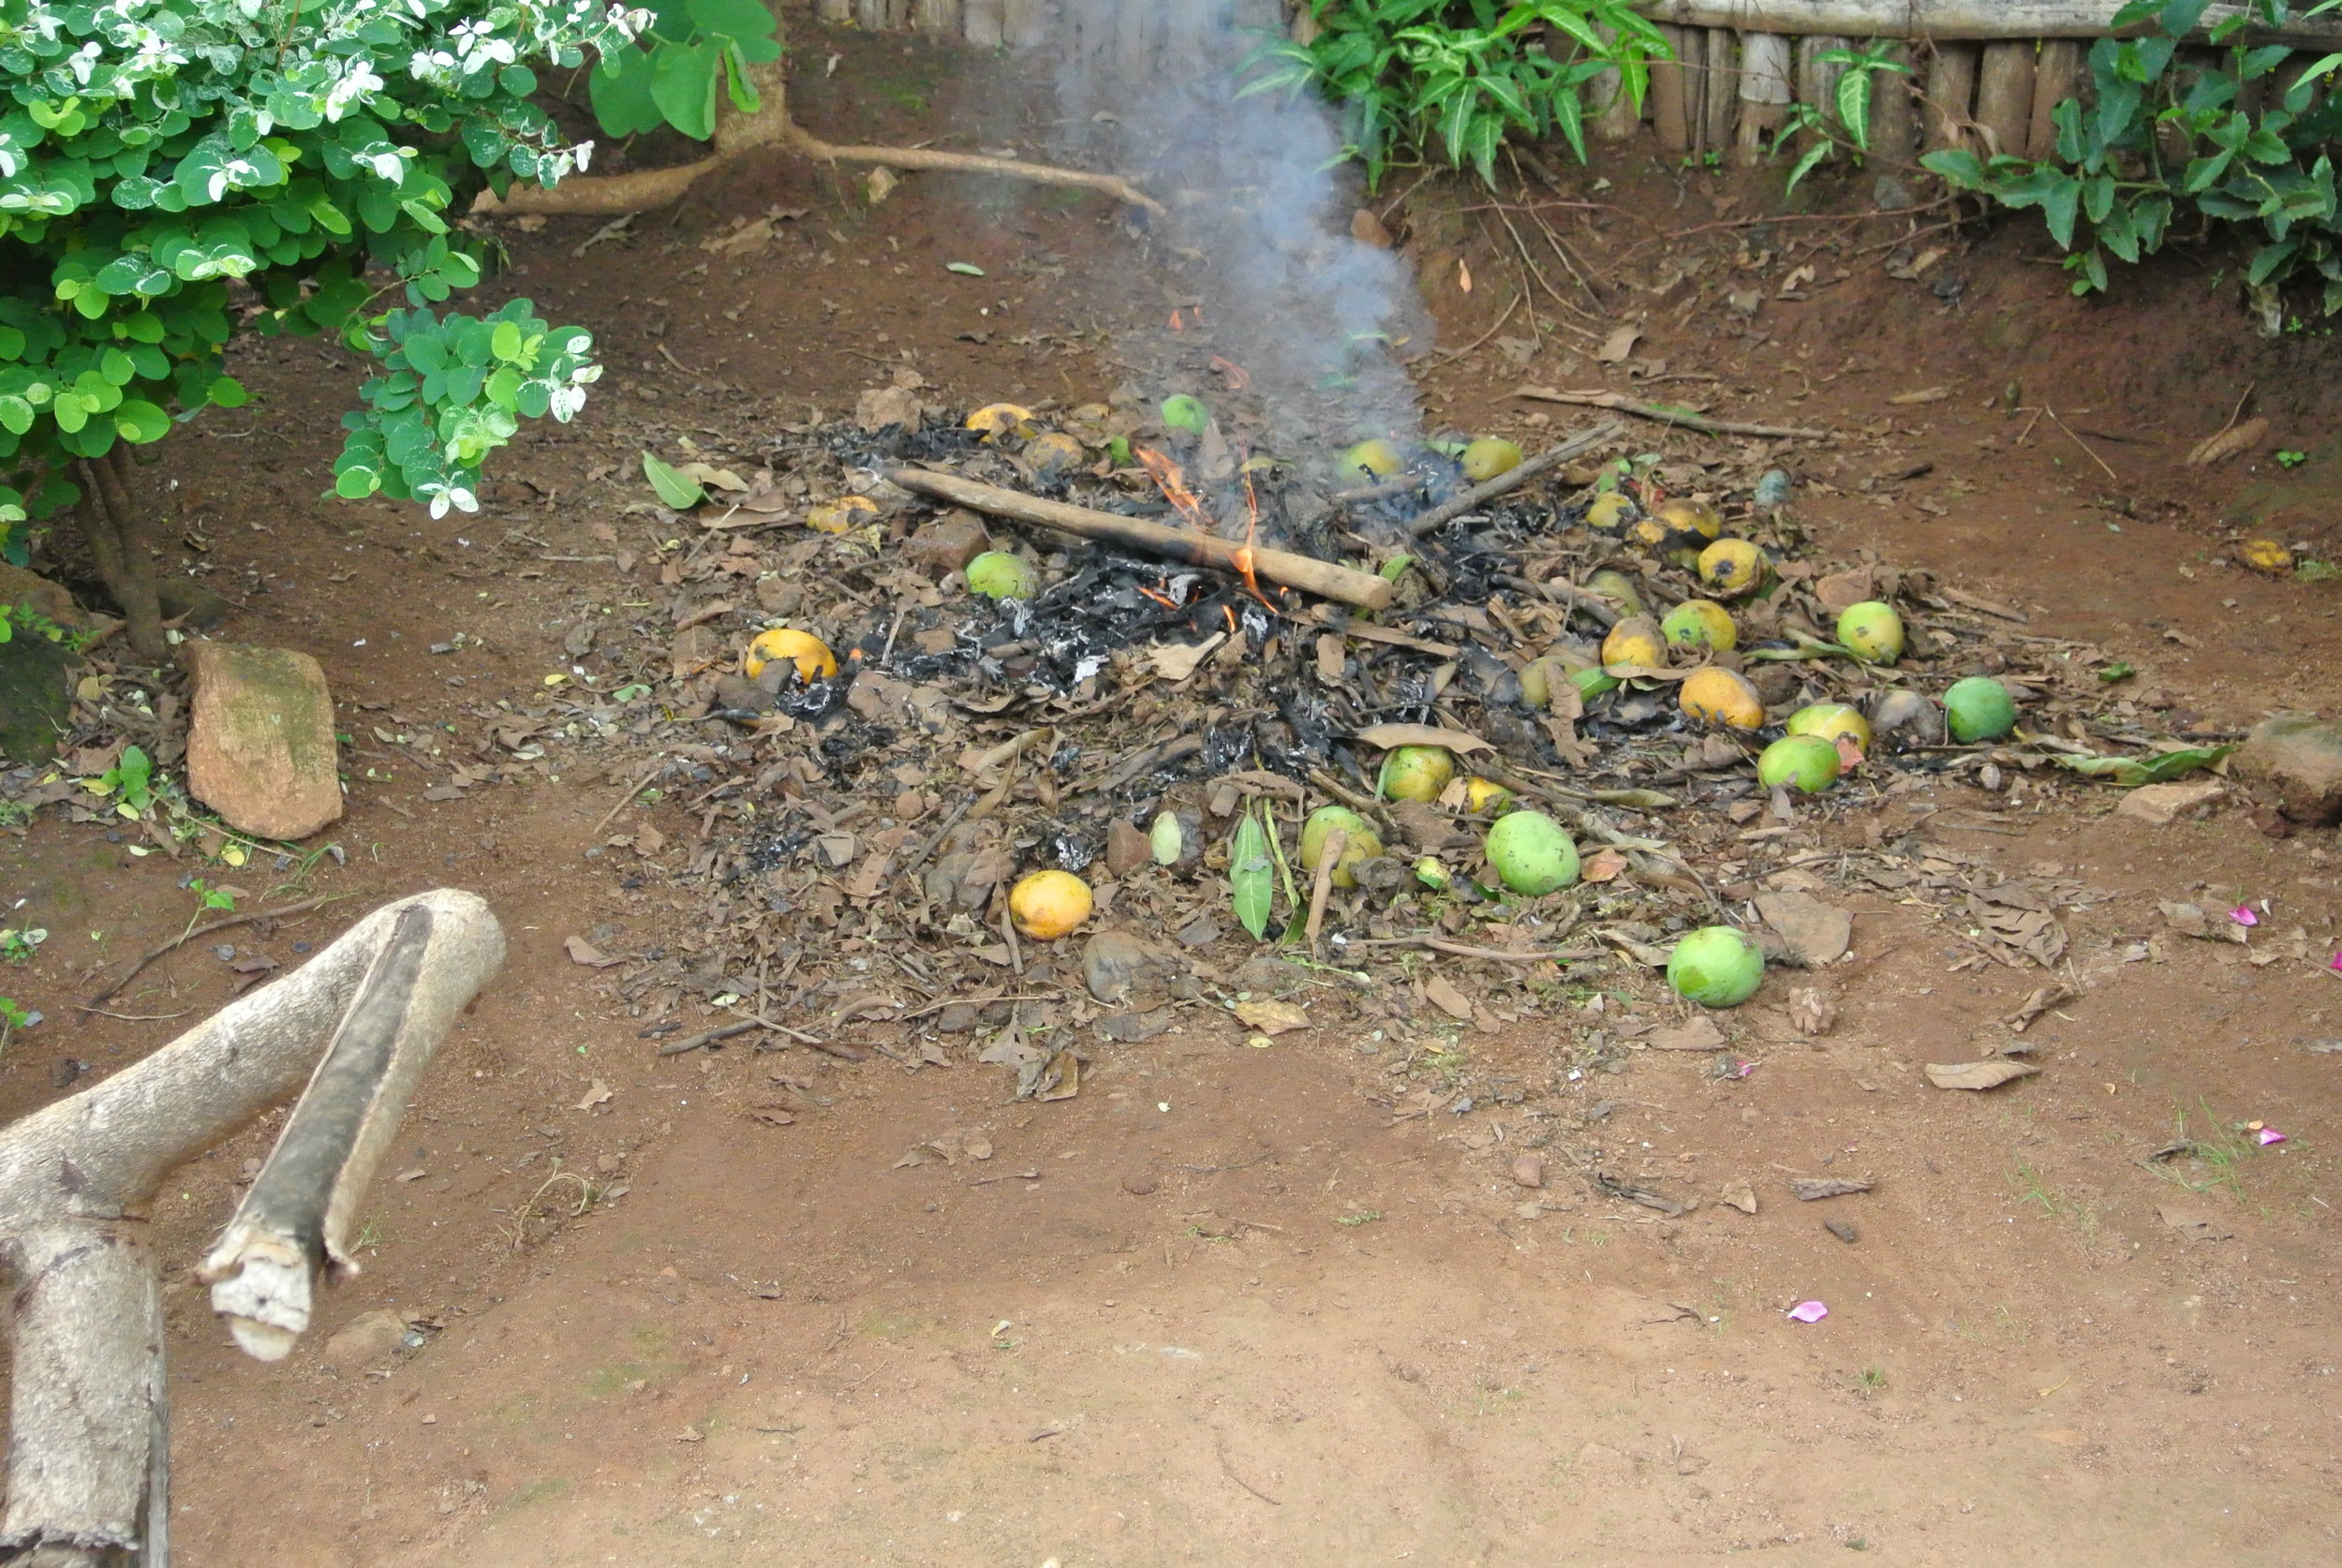 Burning organic material to create charcoal in Malawi.